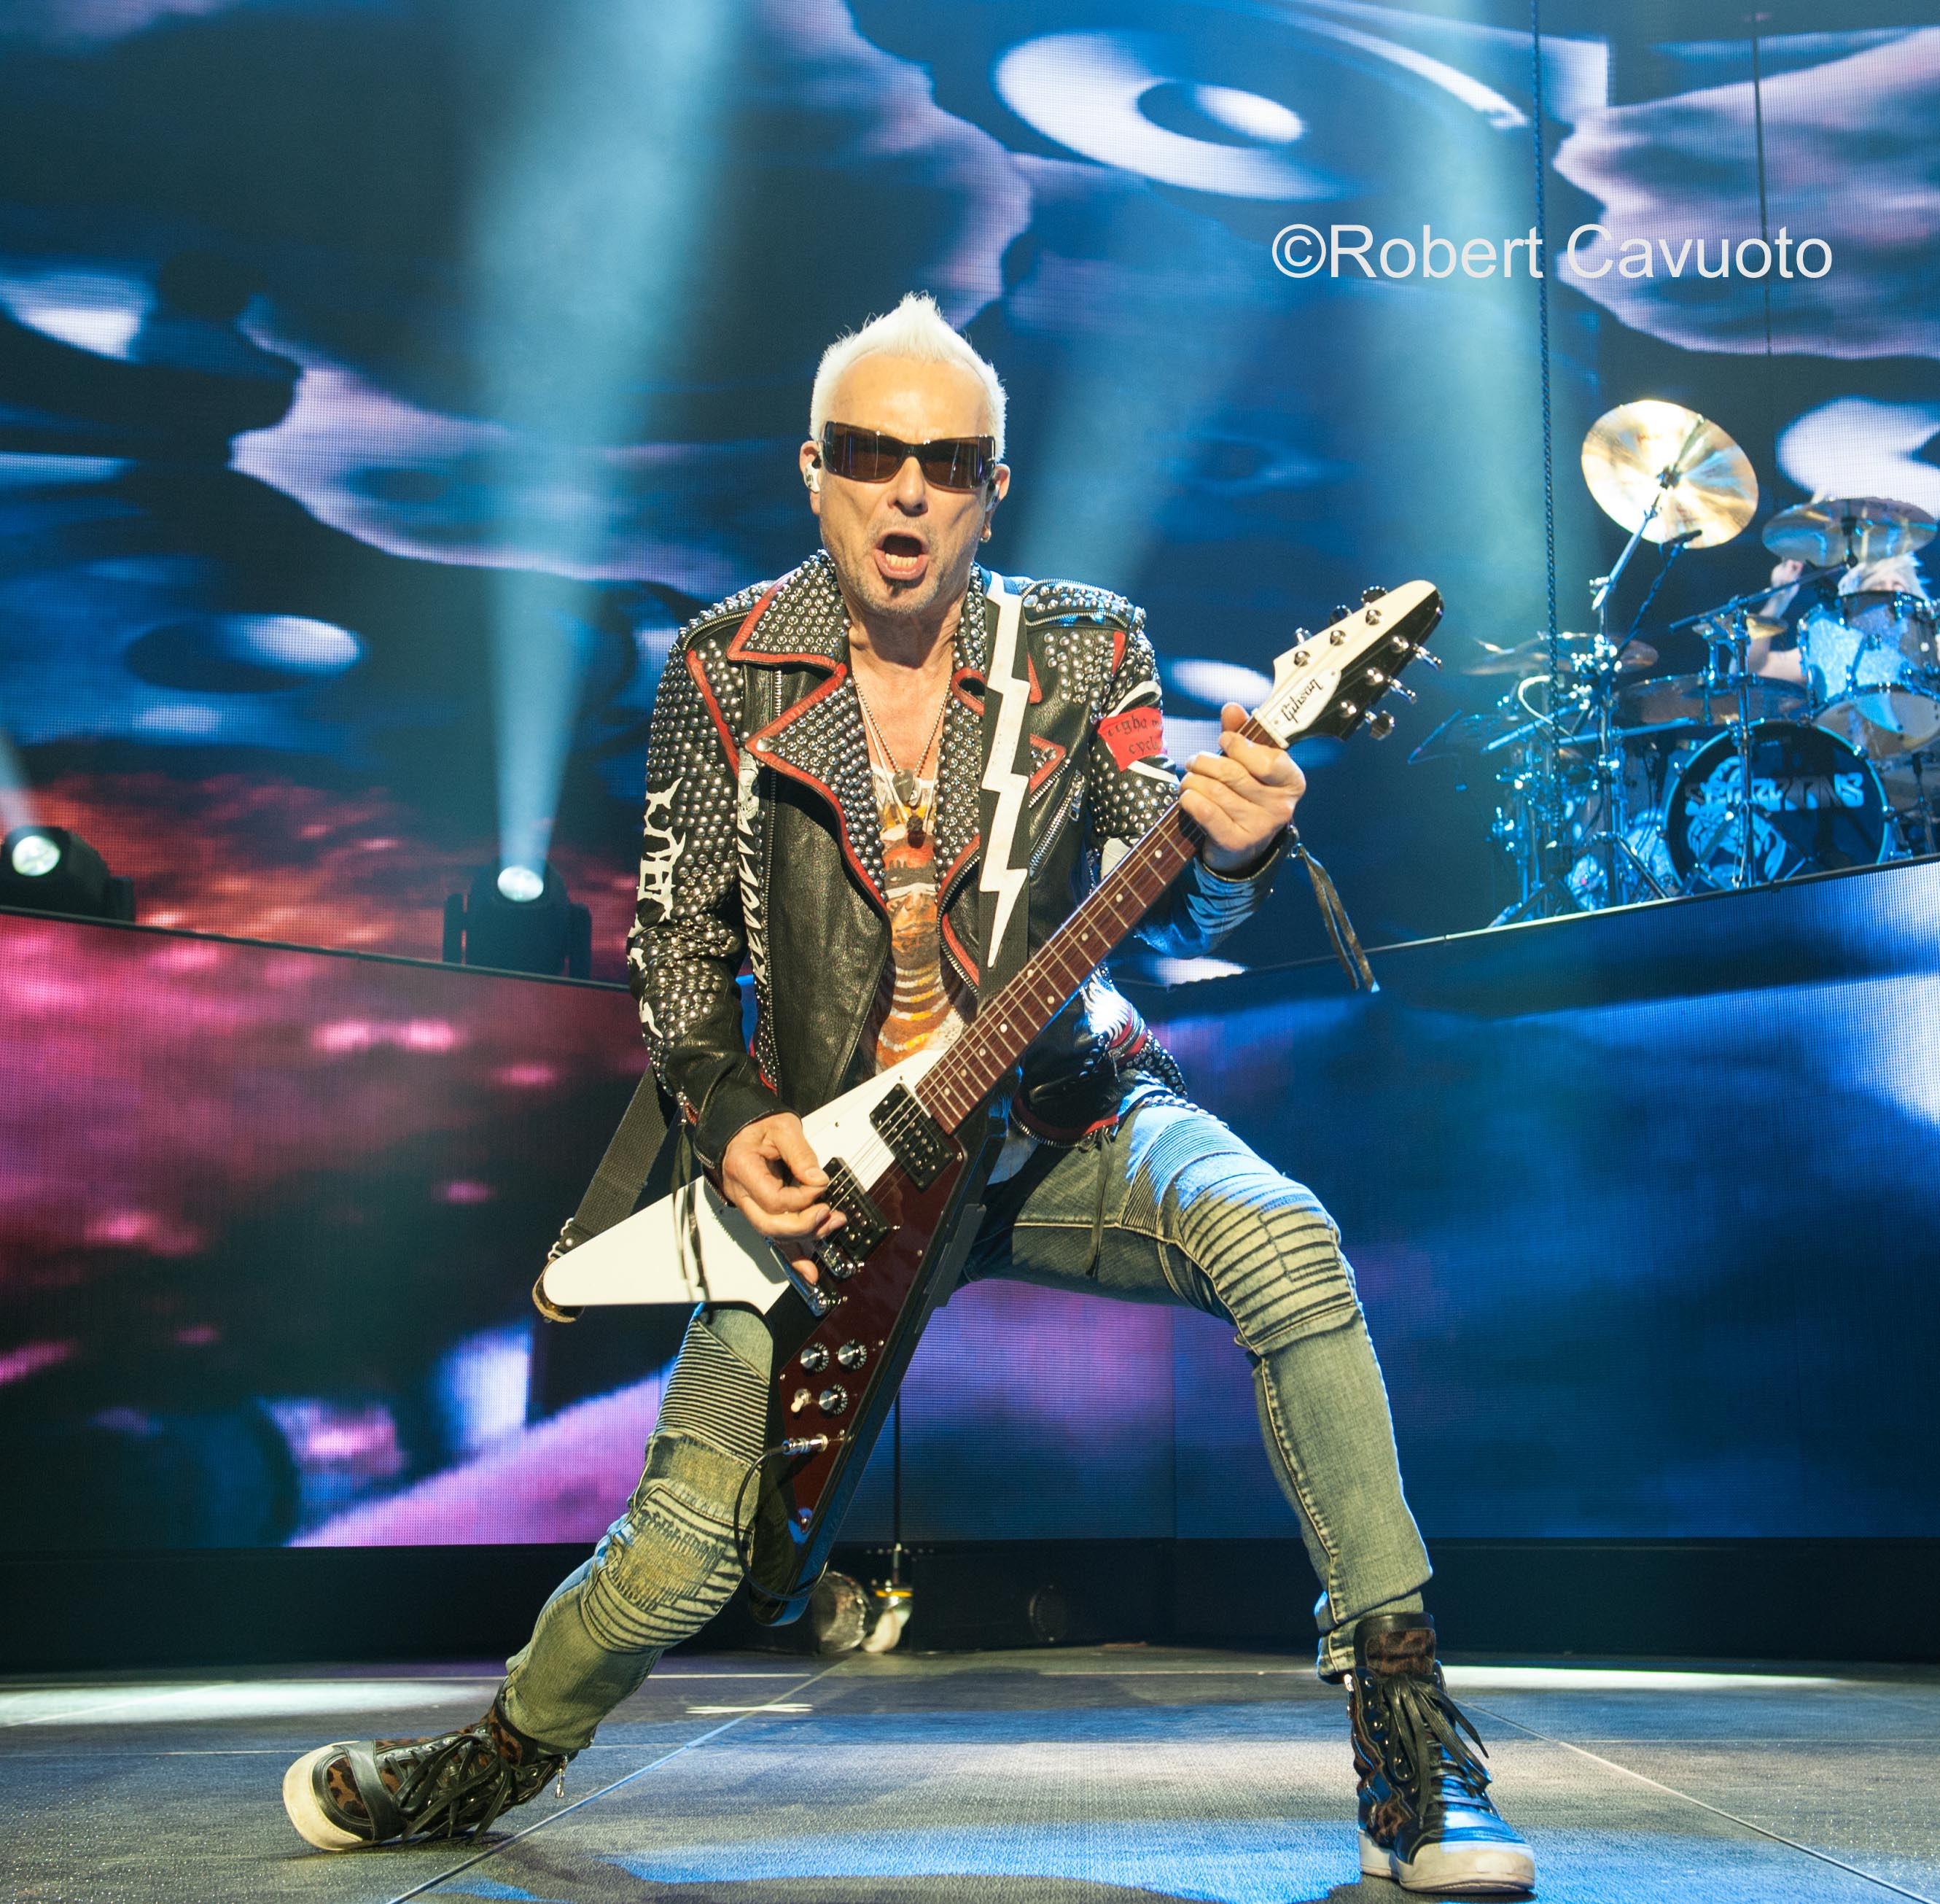 Image result for Rudolf schenker photos